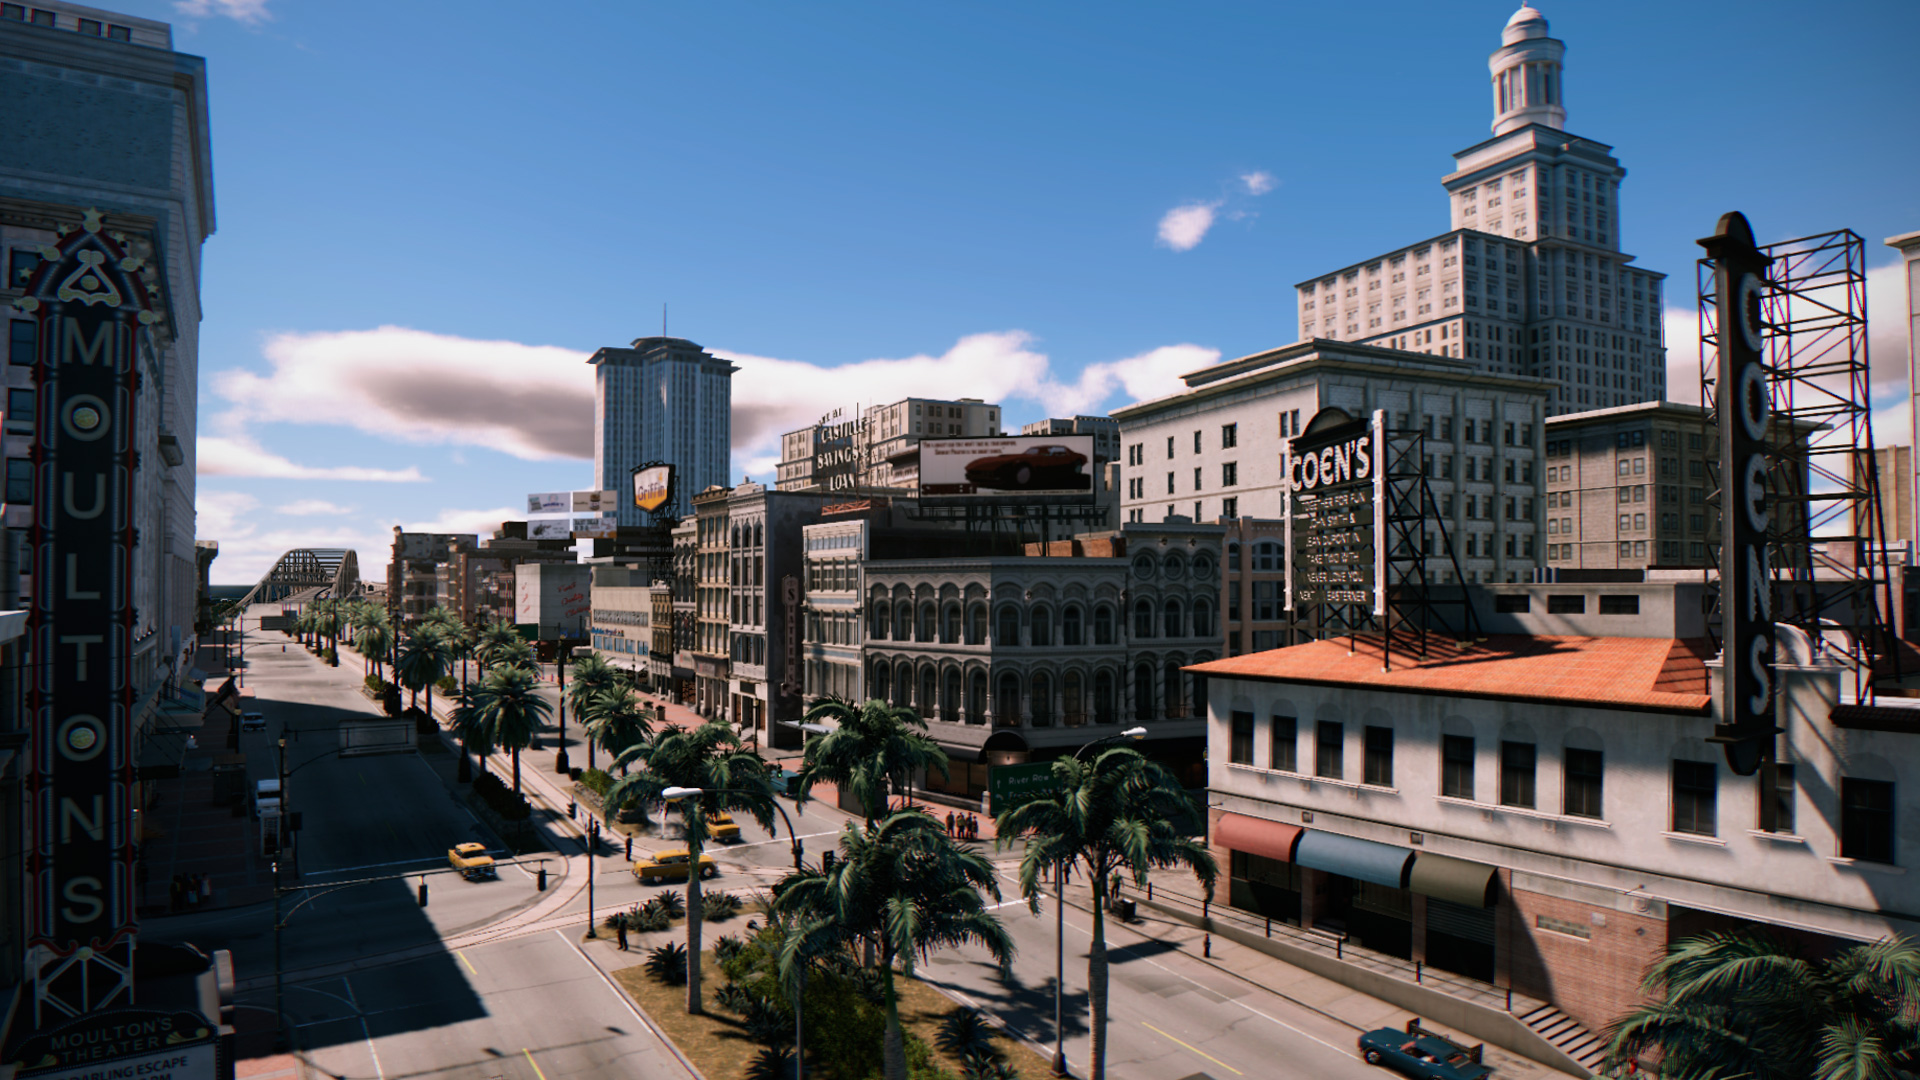 La ville de New Bordeaux de Mafia 3